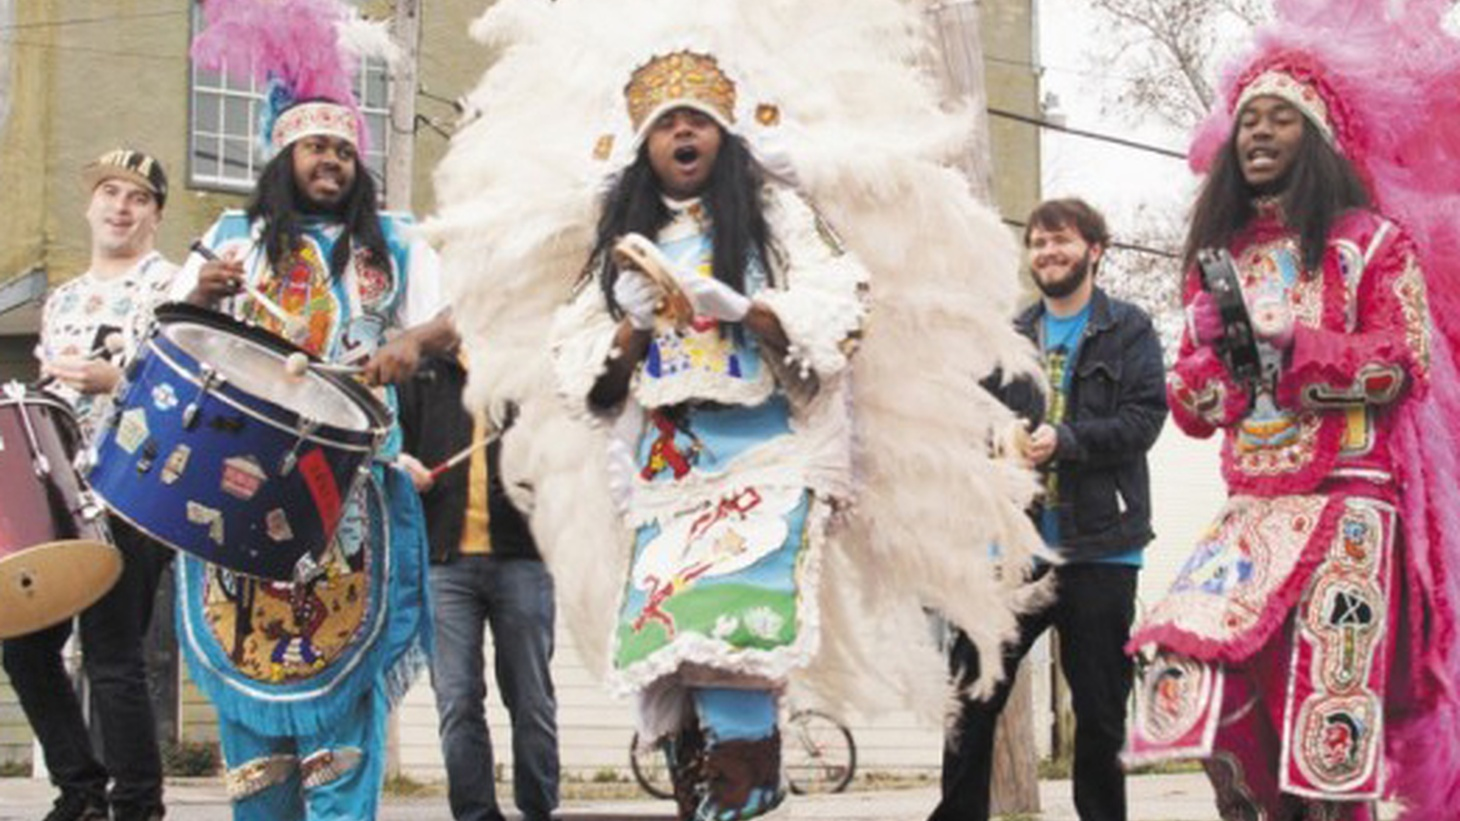 New Orleans' own Mardi Gras newcomers Cha Wa make their debut on their album, Funk 'n' Feathers. It's an apt title, as it encapsulates their fun-loving vibe tied to the traditions of the Crescent City's Mardi Gras Indians.